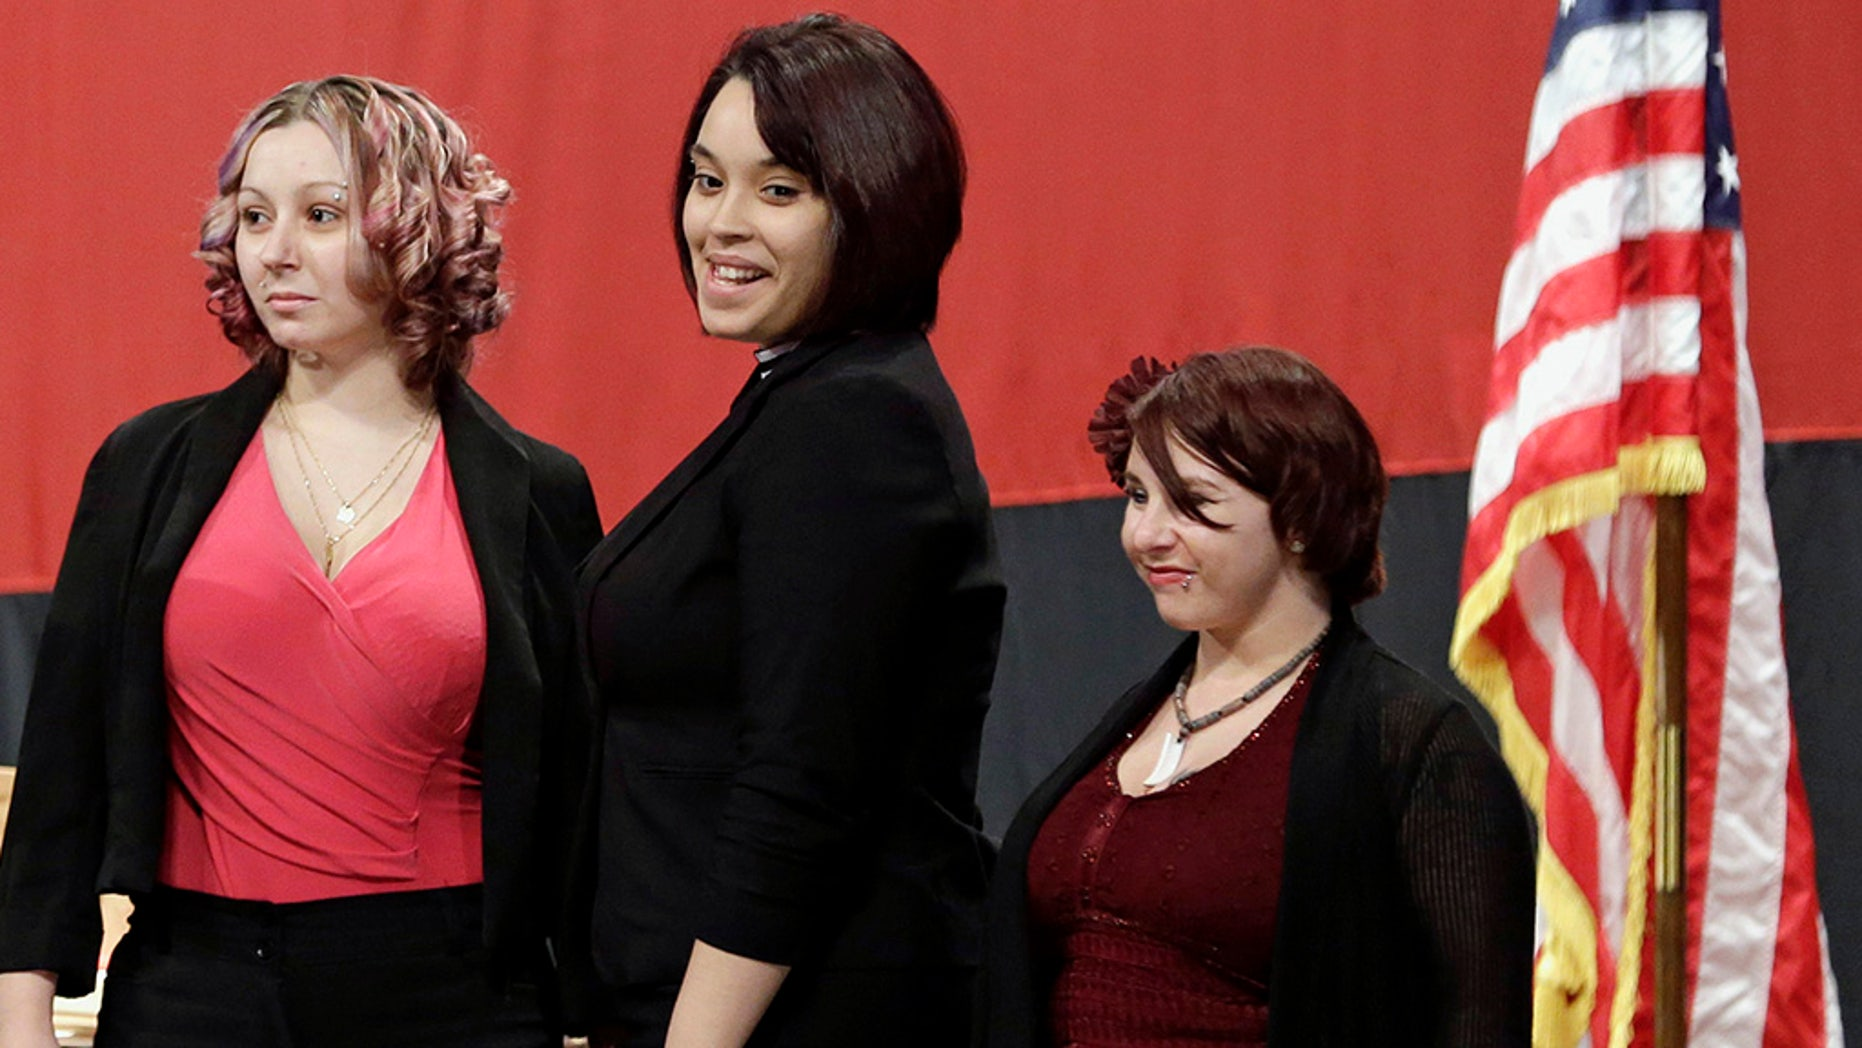 From left, Amanda Berry, Gina DeJesus, and Michelle Knight,who had been snatched off the streets separately between 2002 and 2004 and locked inside Ariel Castro's house where he chained and raped them, investigators later said. (AP Photo/Tony Dejak, File)